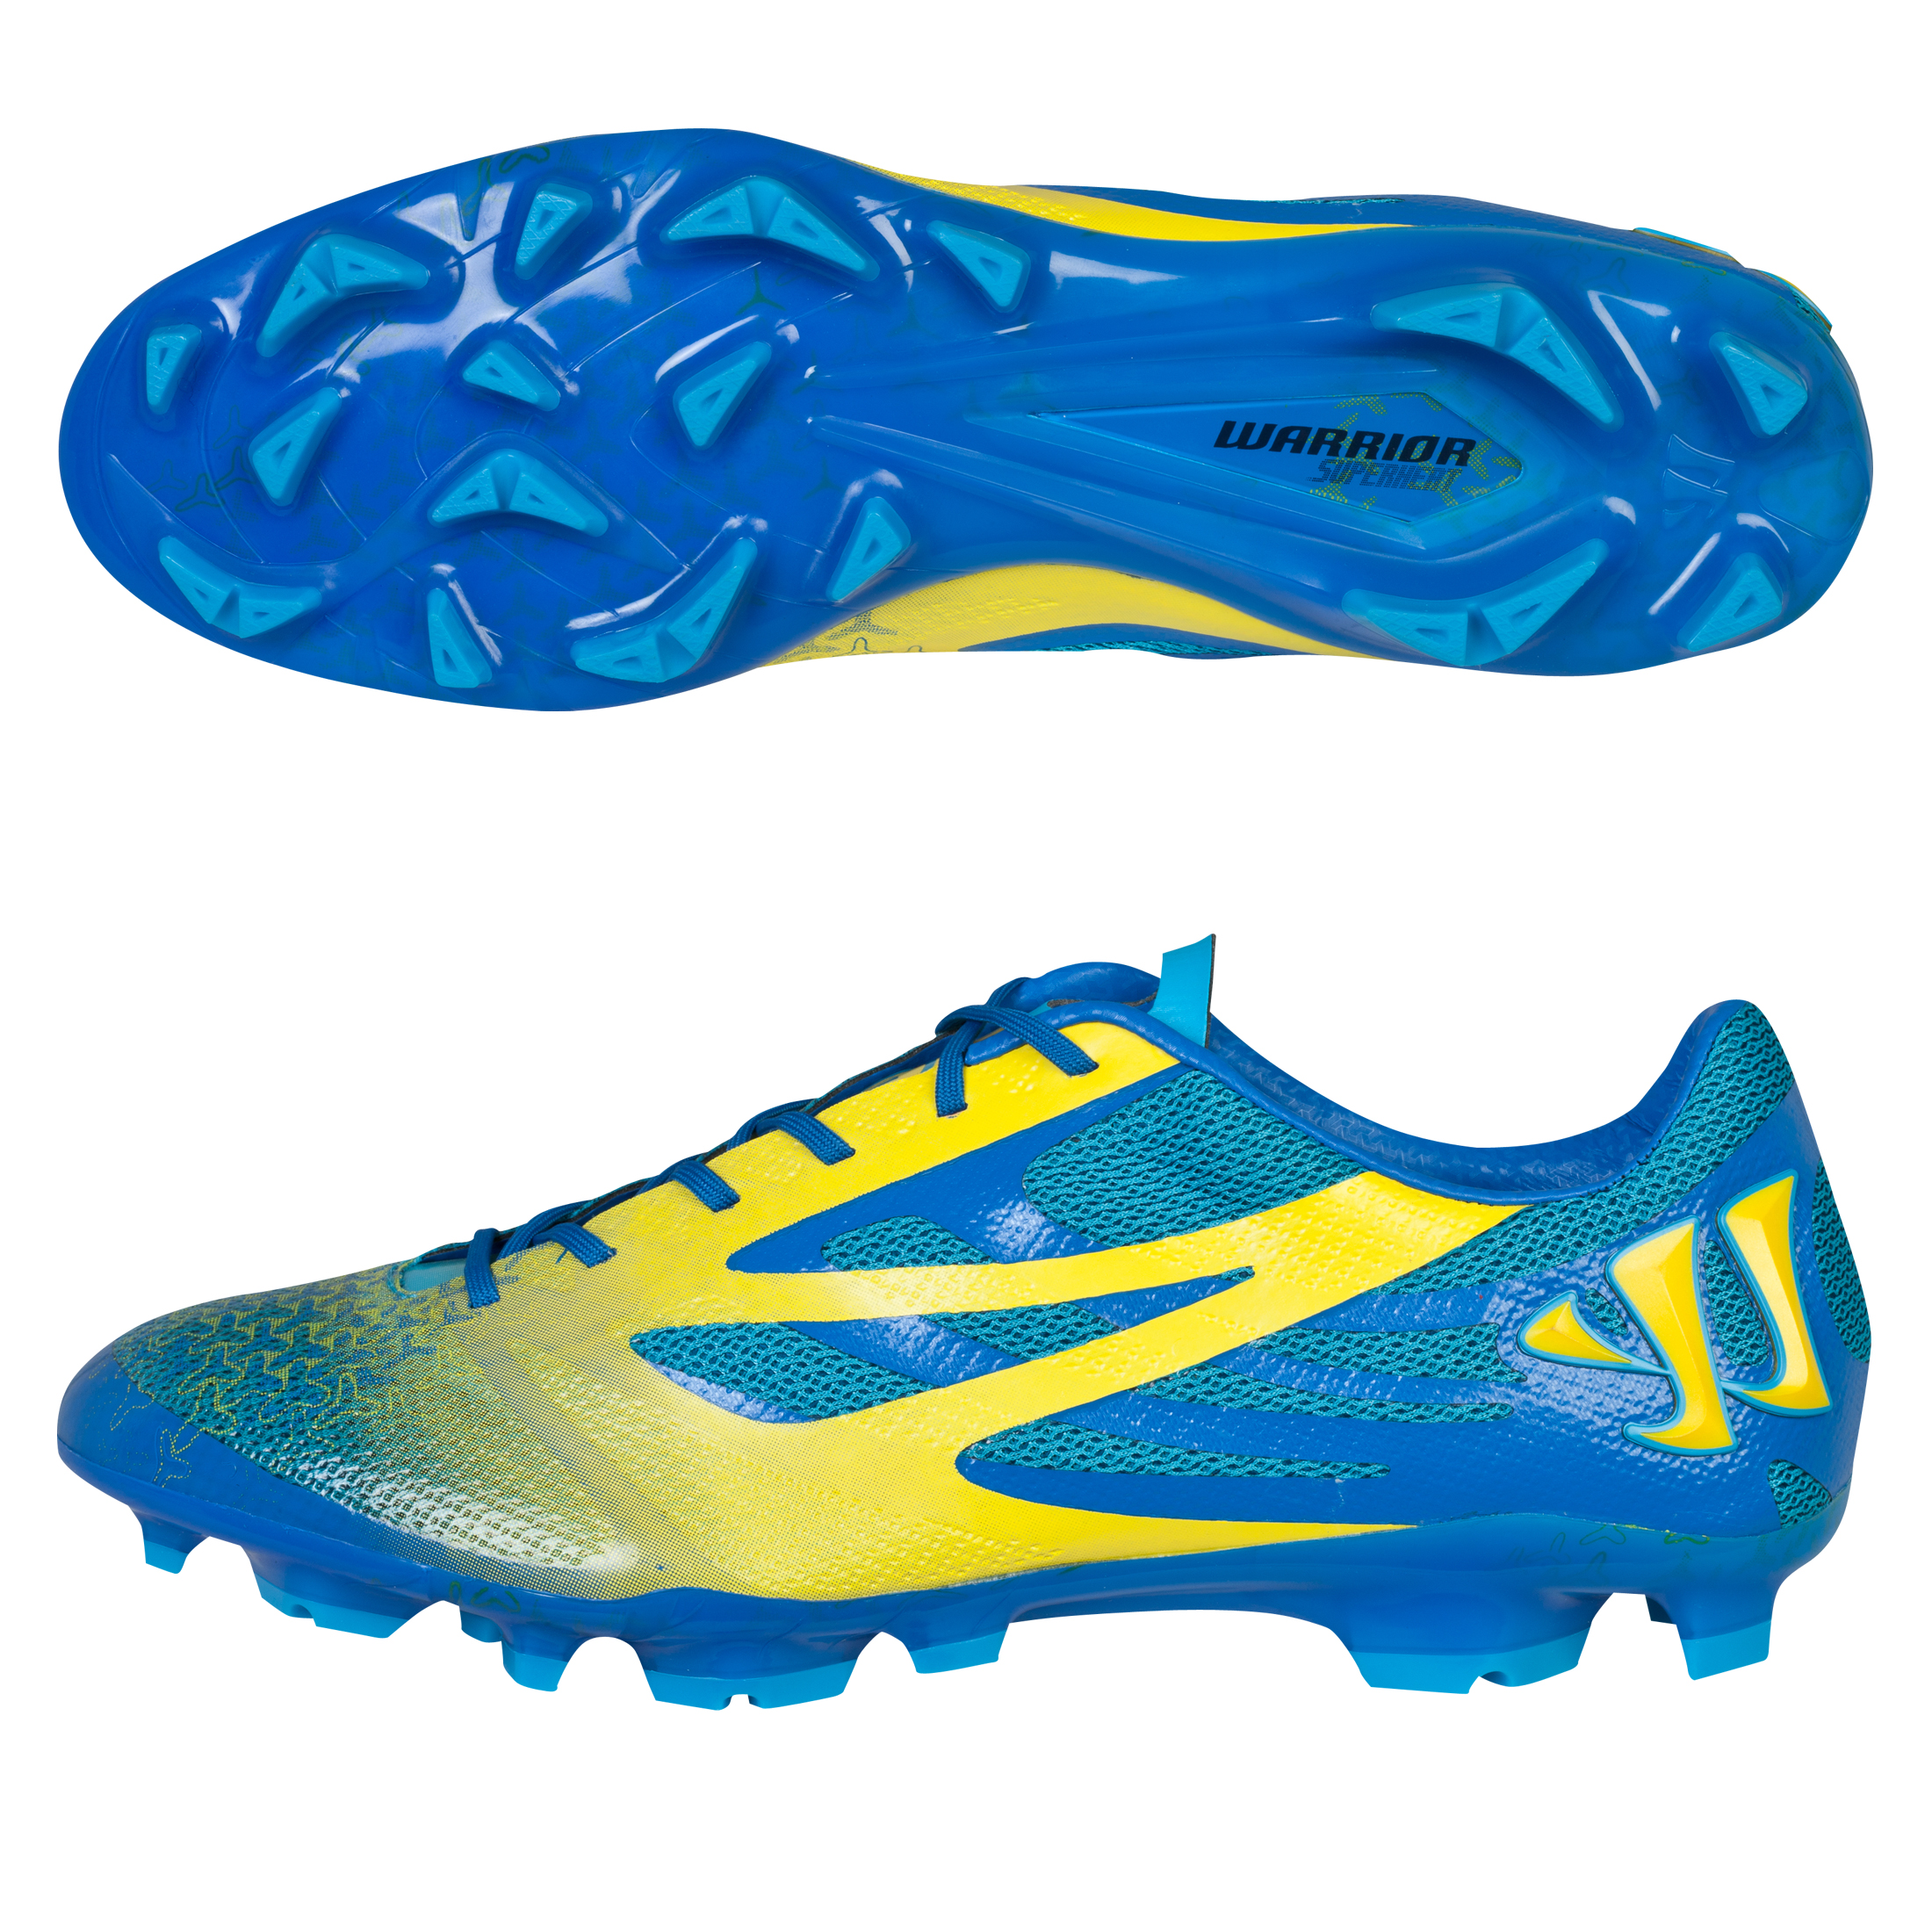 Warrior Superheat S-Lite Firm Ground Football Boots Blue